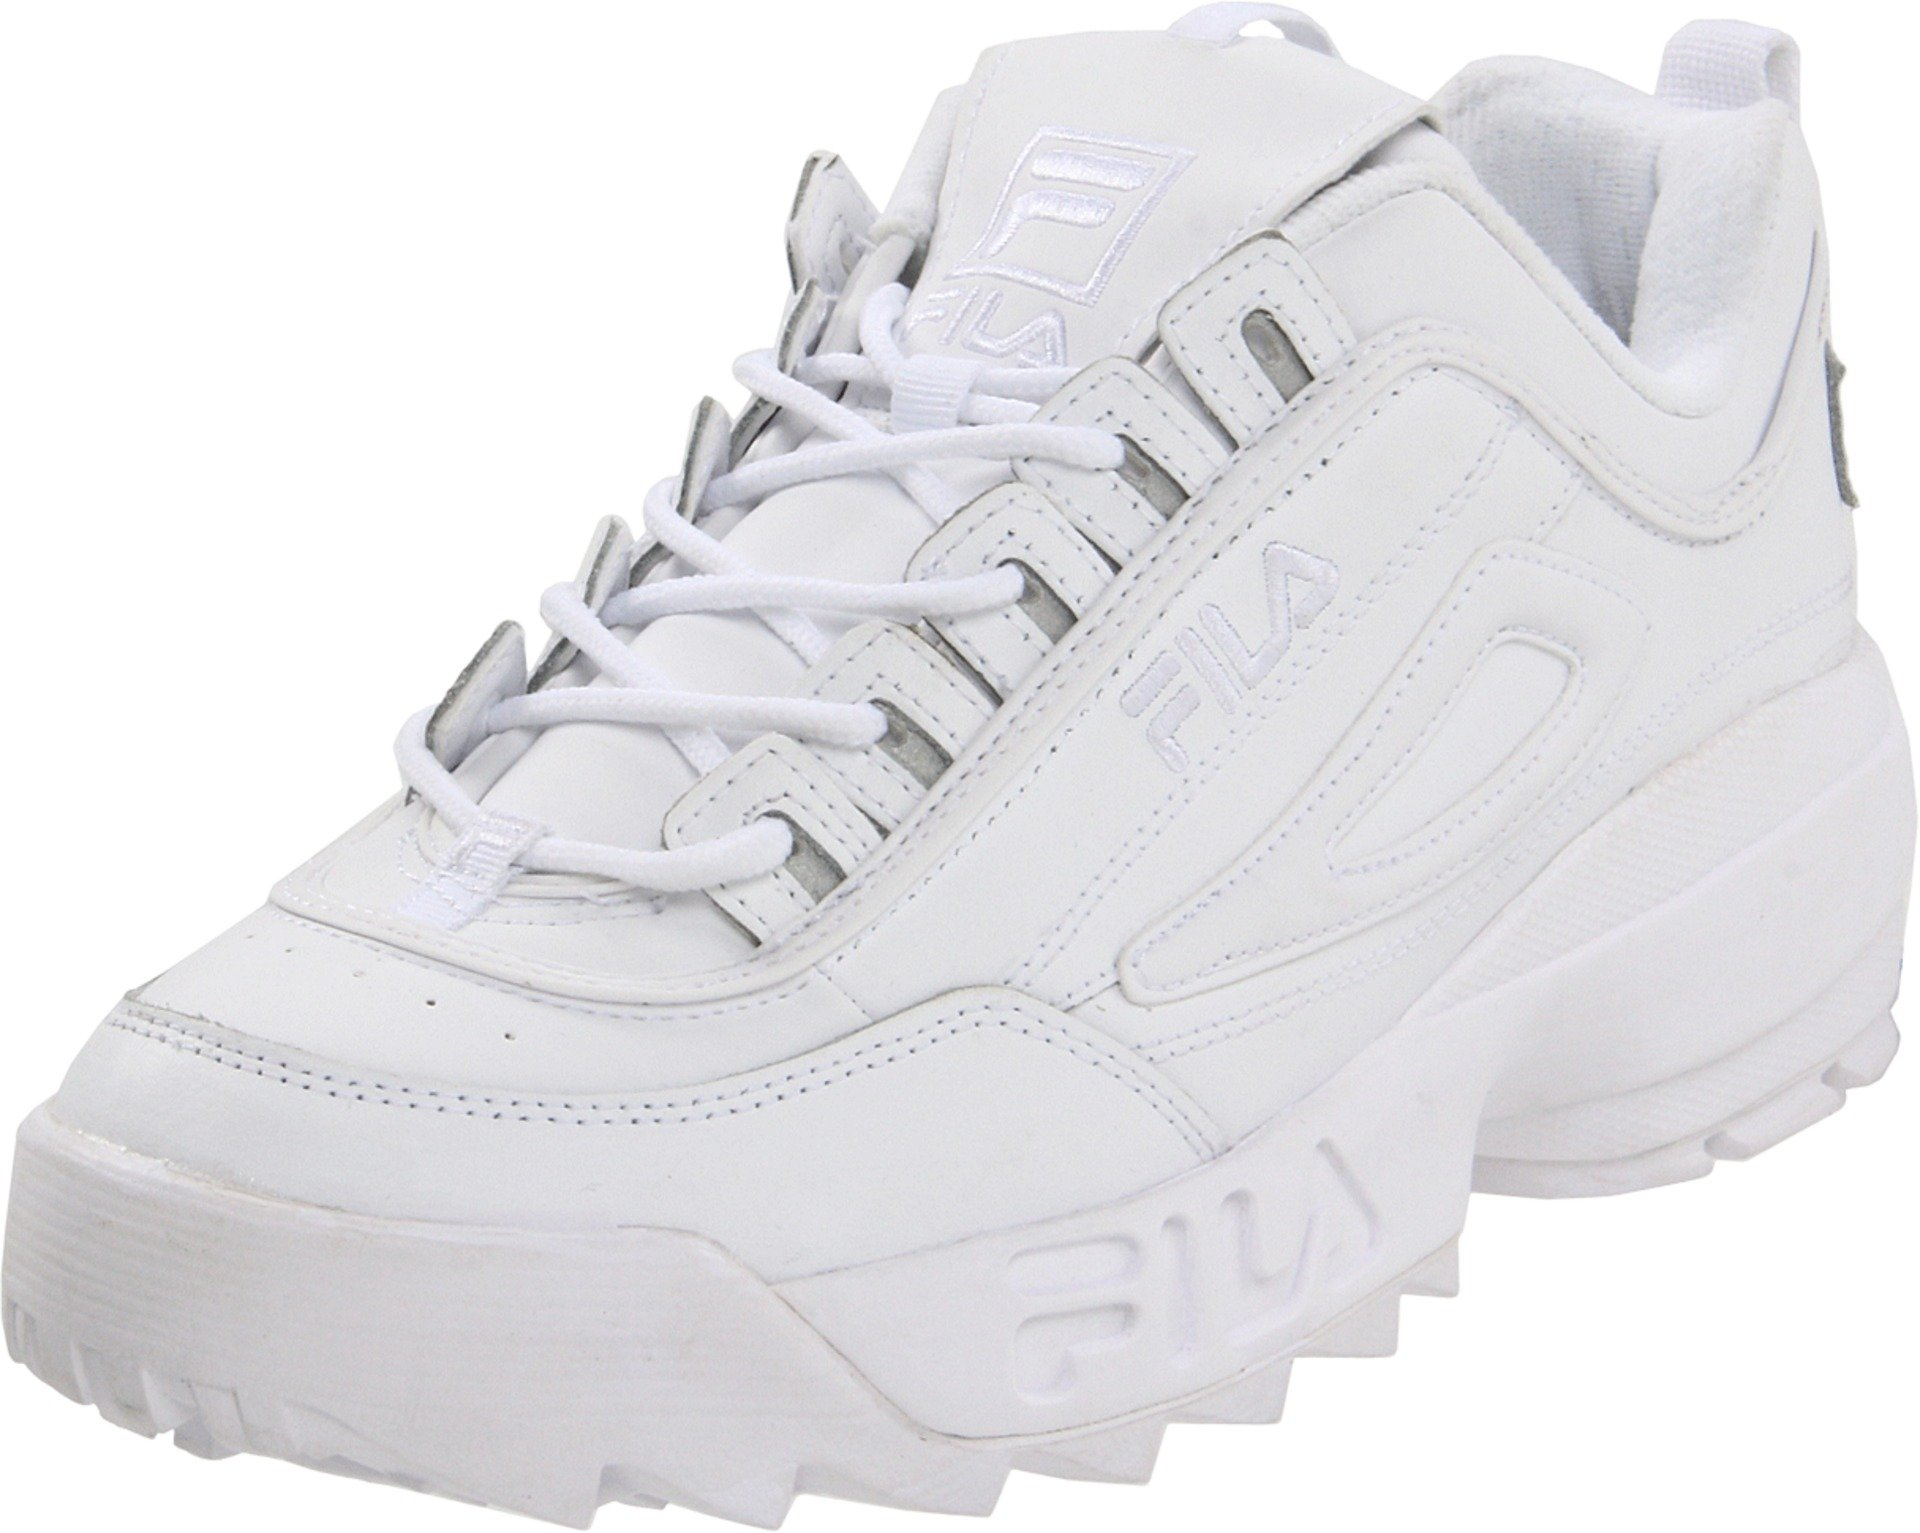 02eac0bbcef0 Galleon - Fila Men s Strada Disruptor